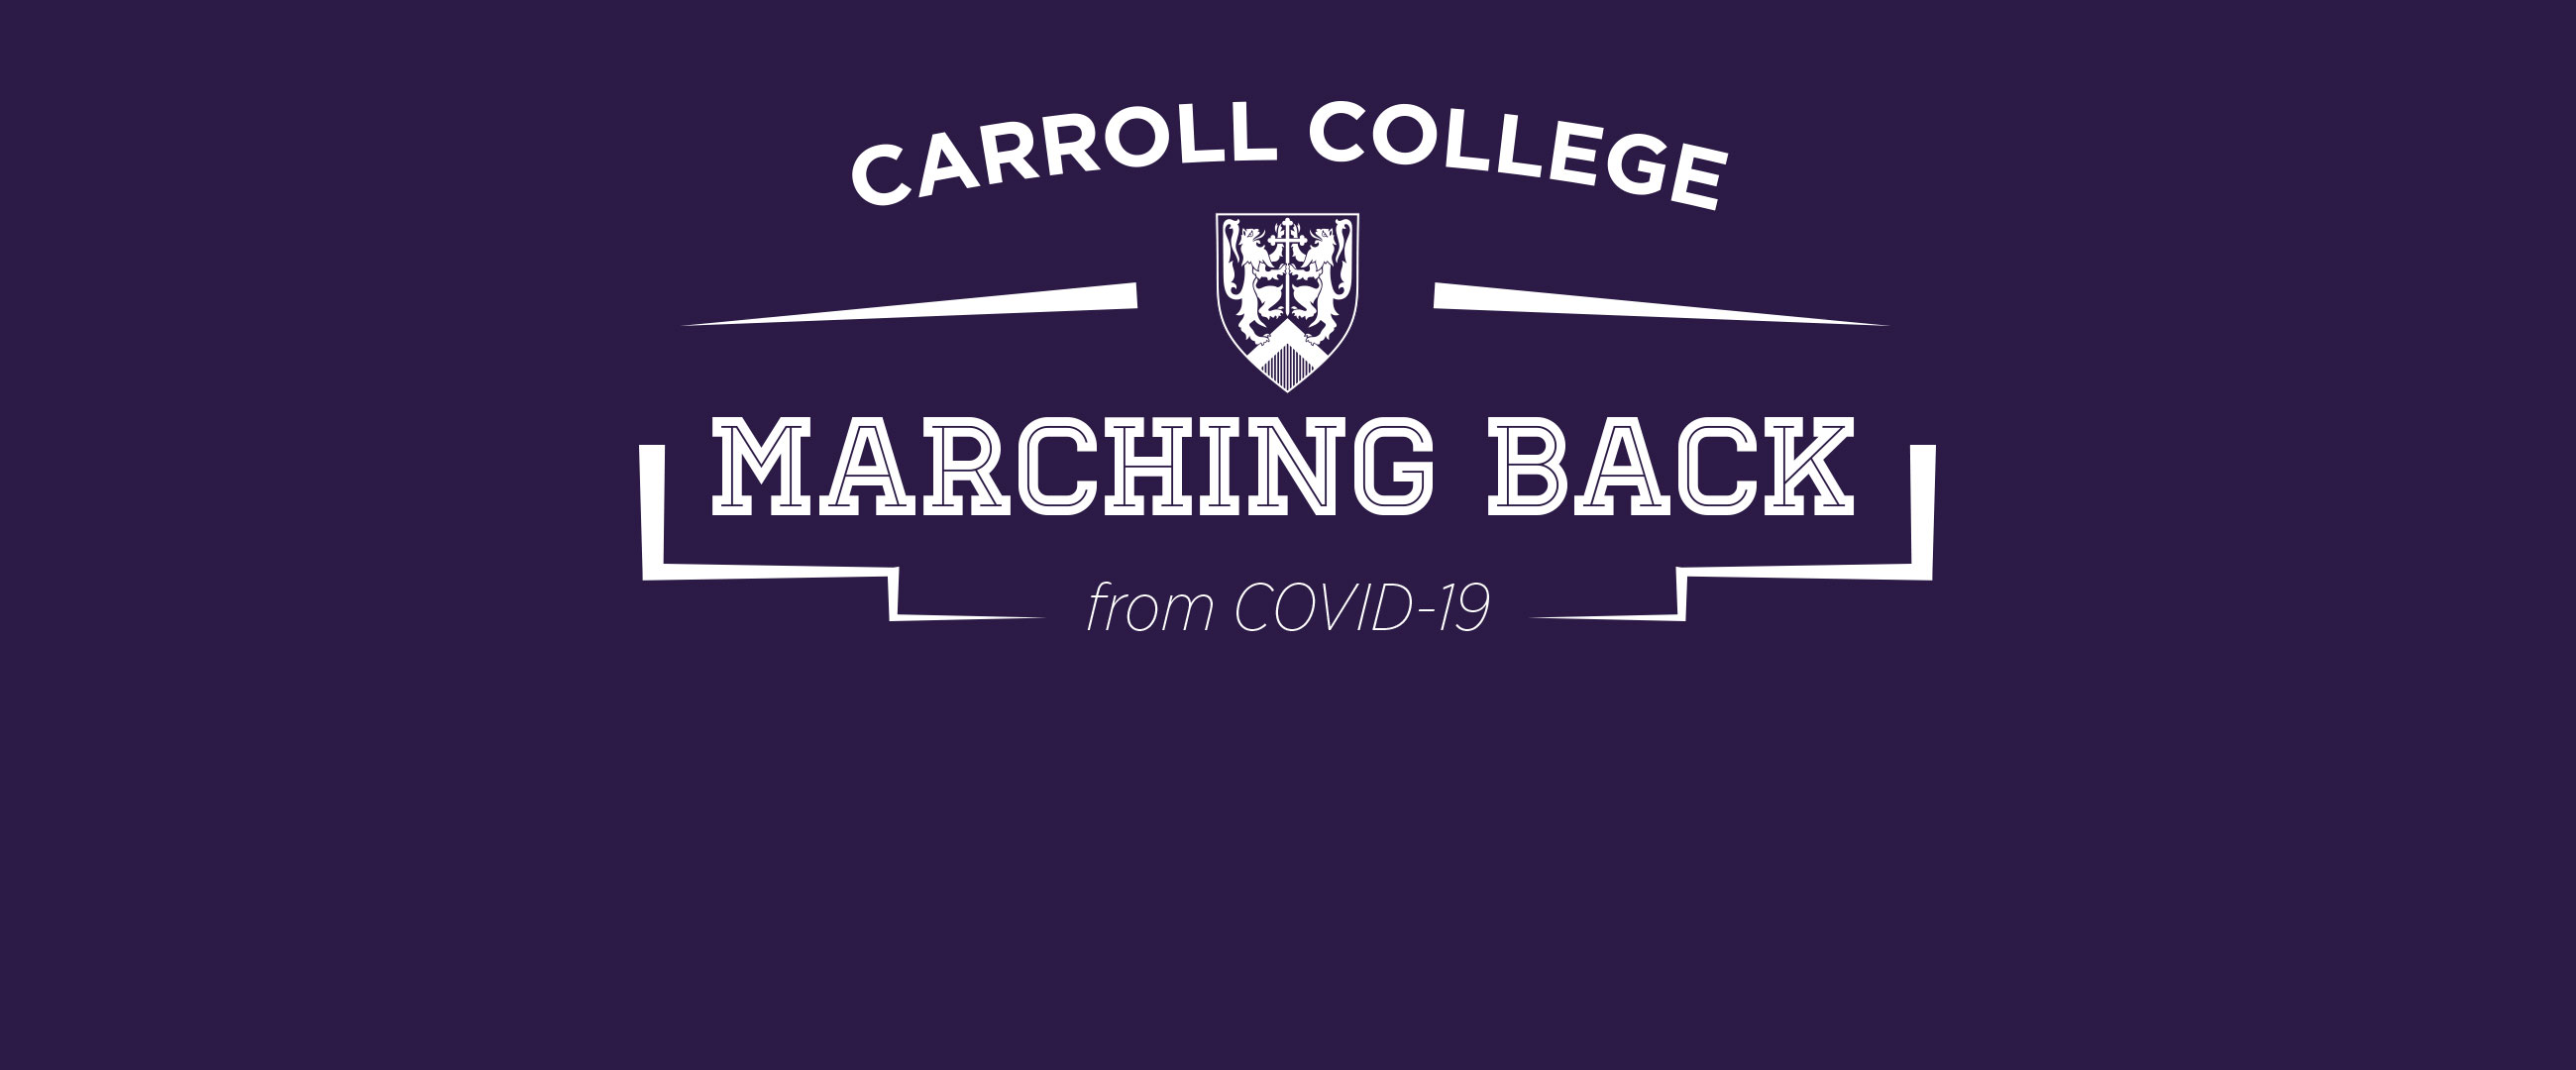 Marching Back graphic